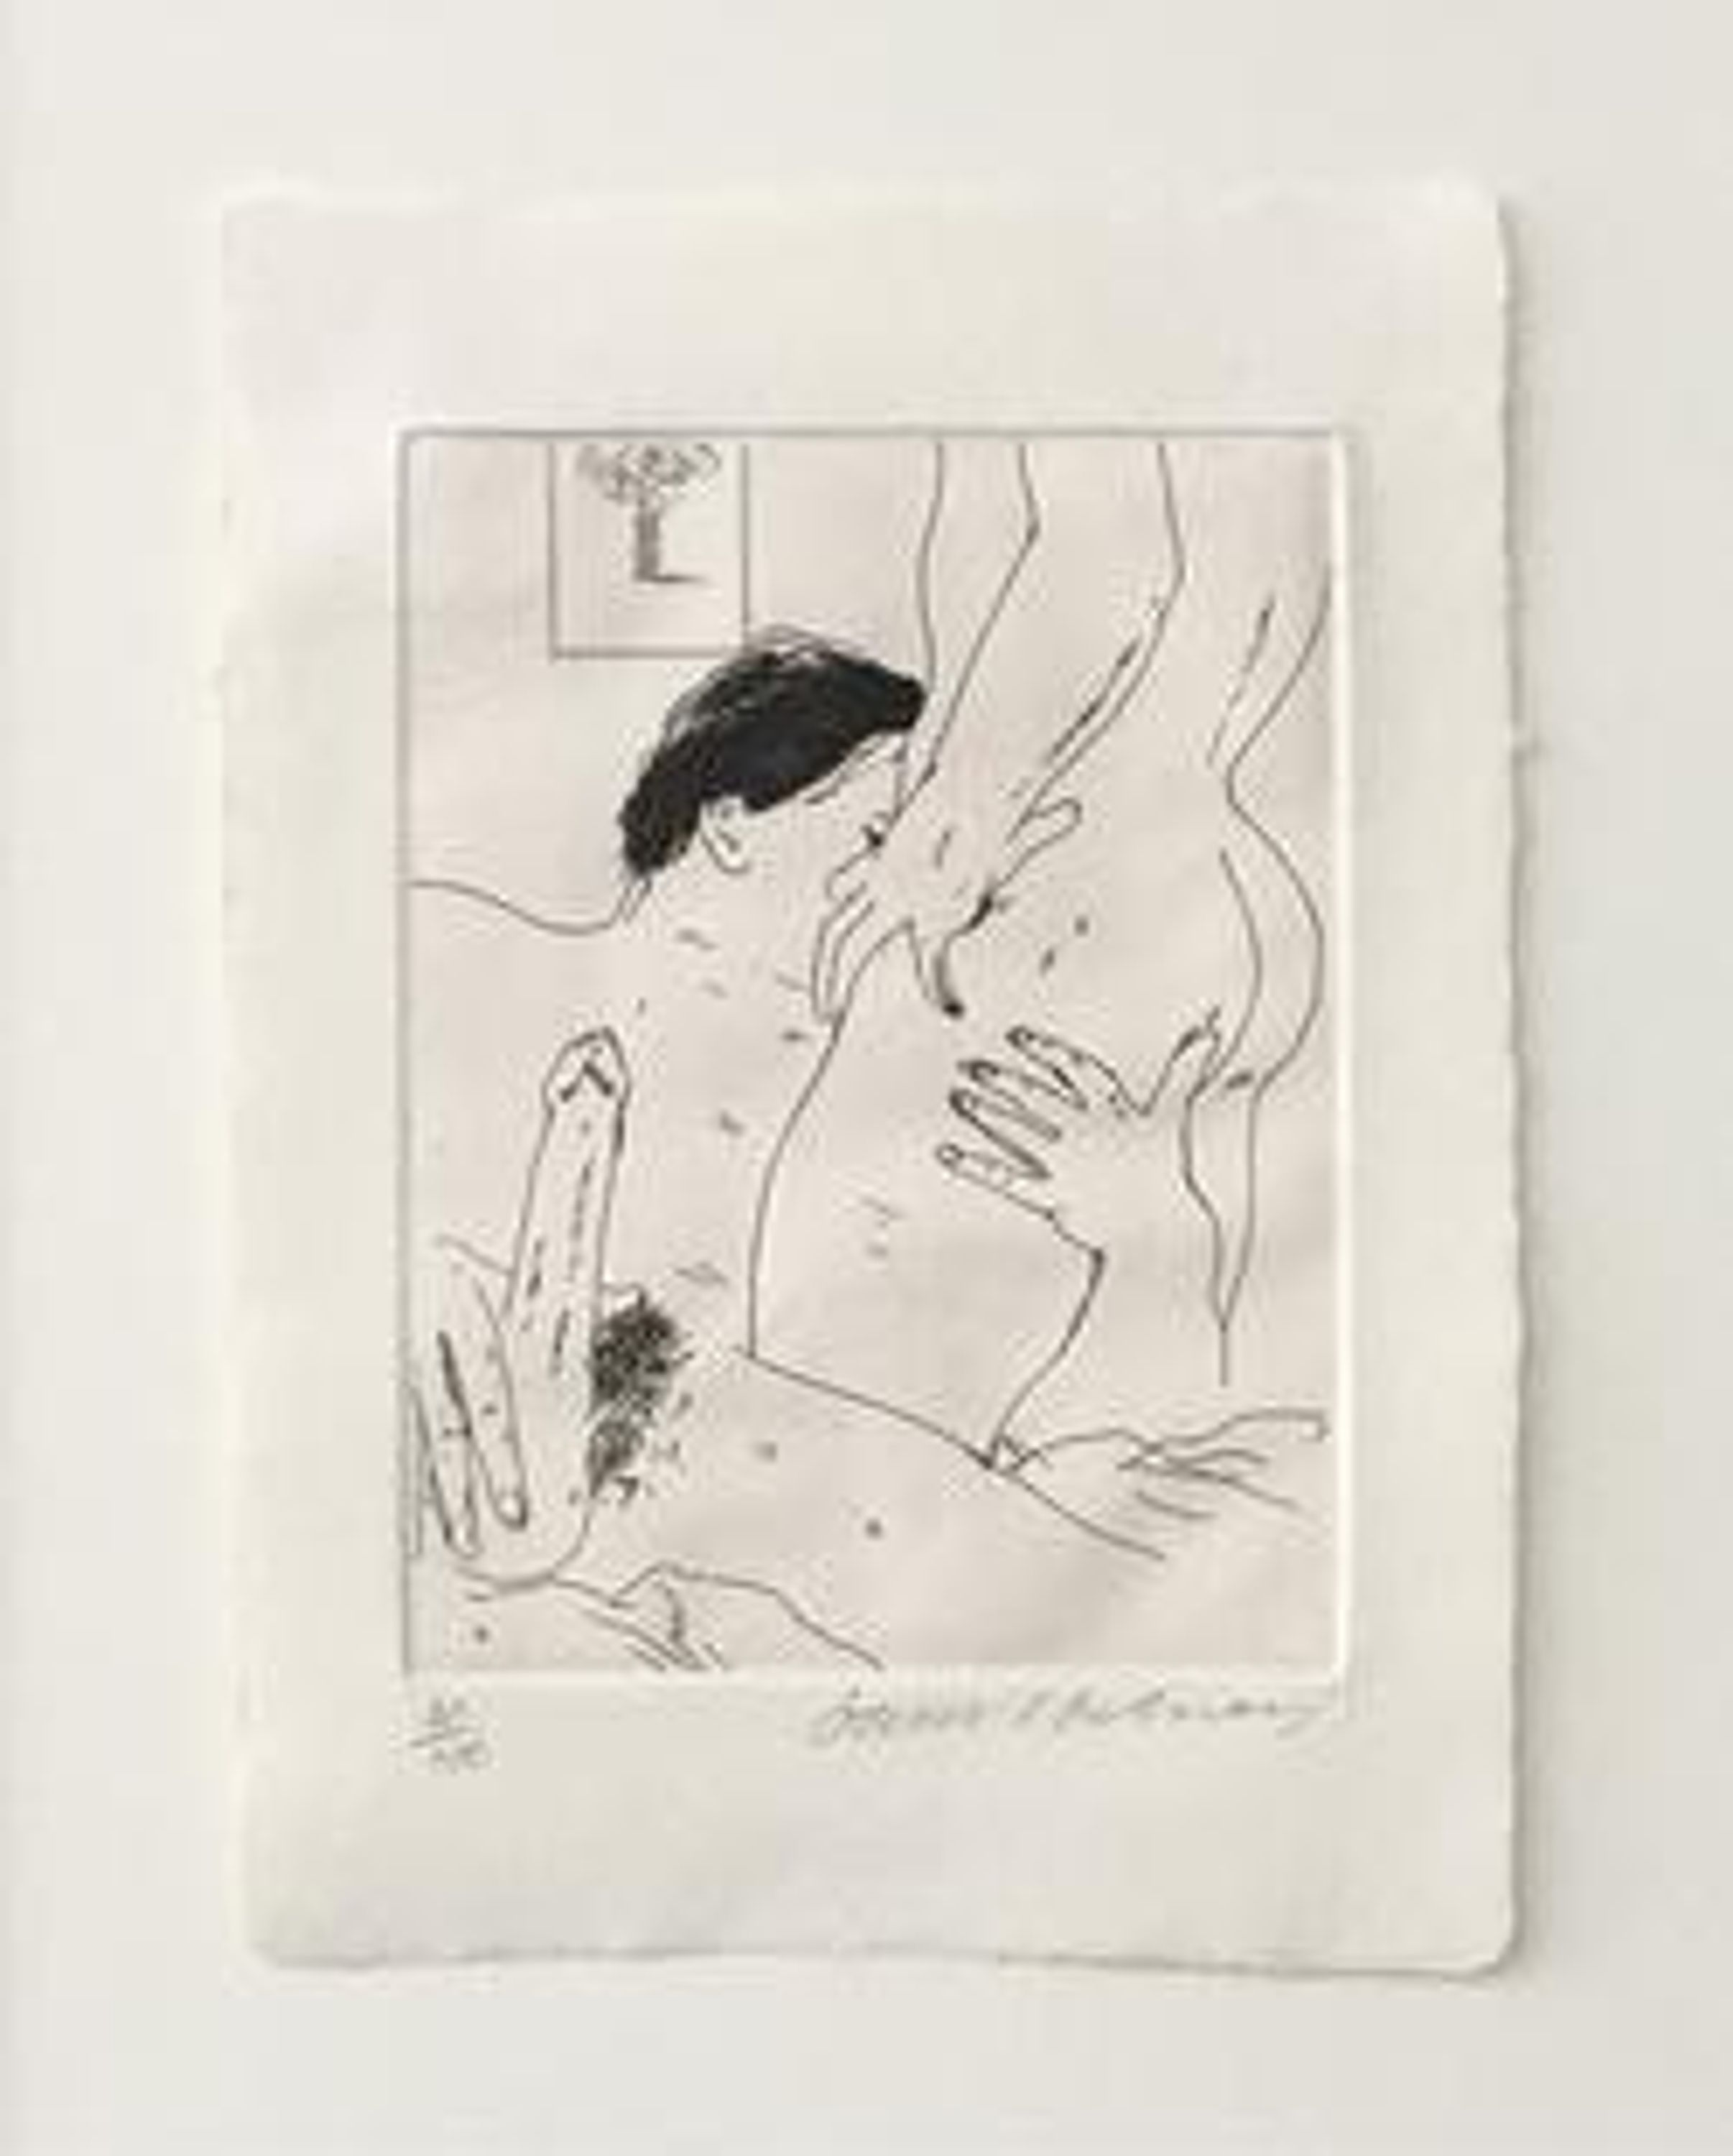 An Erotic Etching by David Hockney, vidaralida